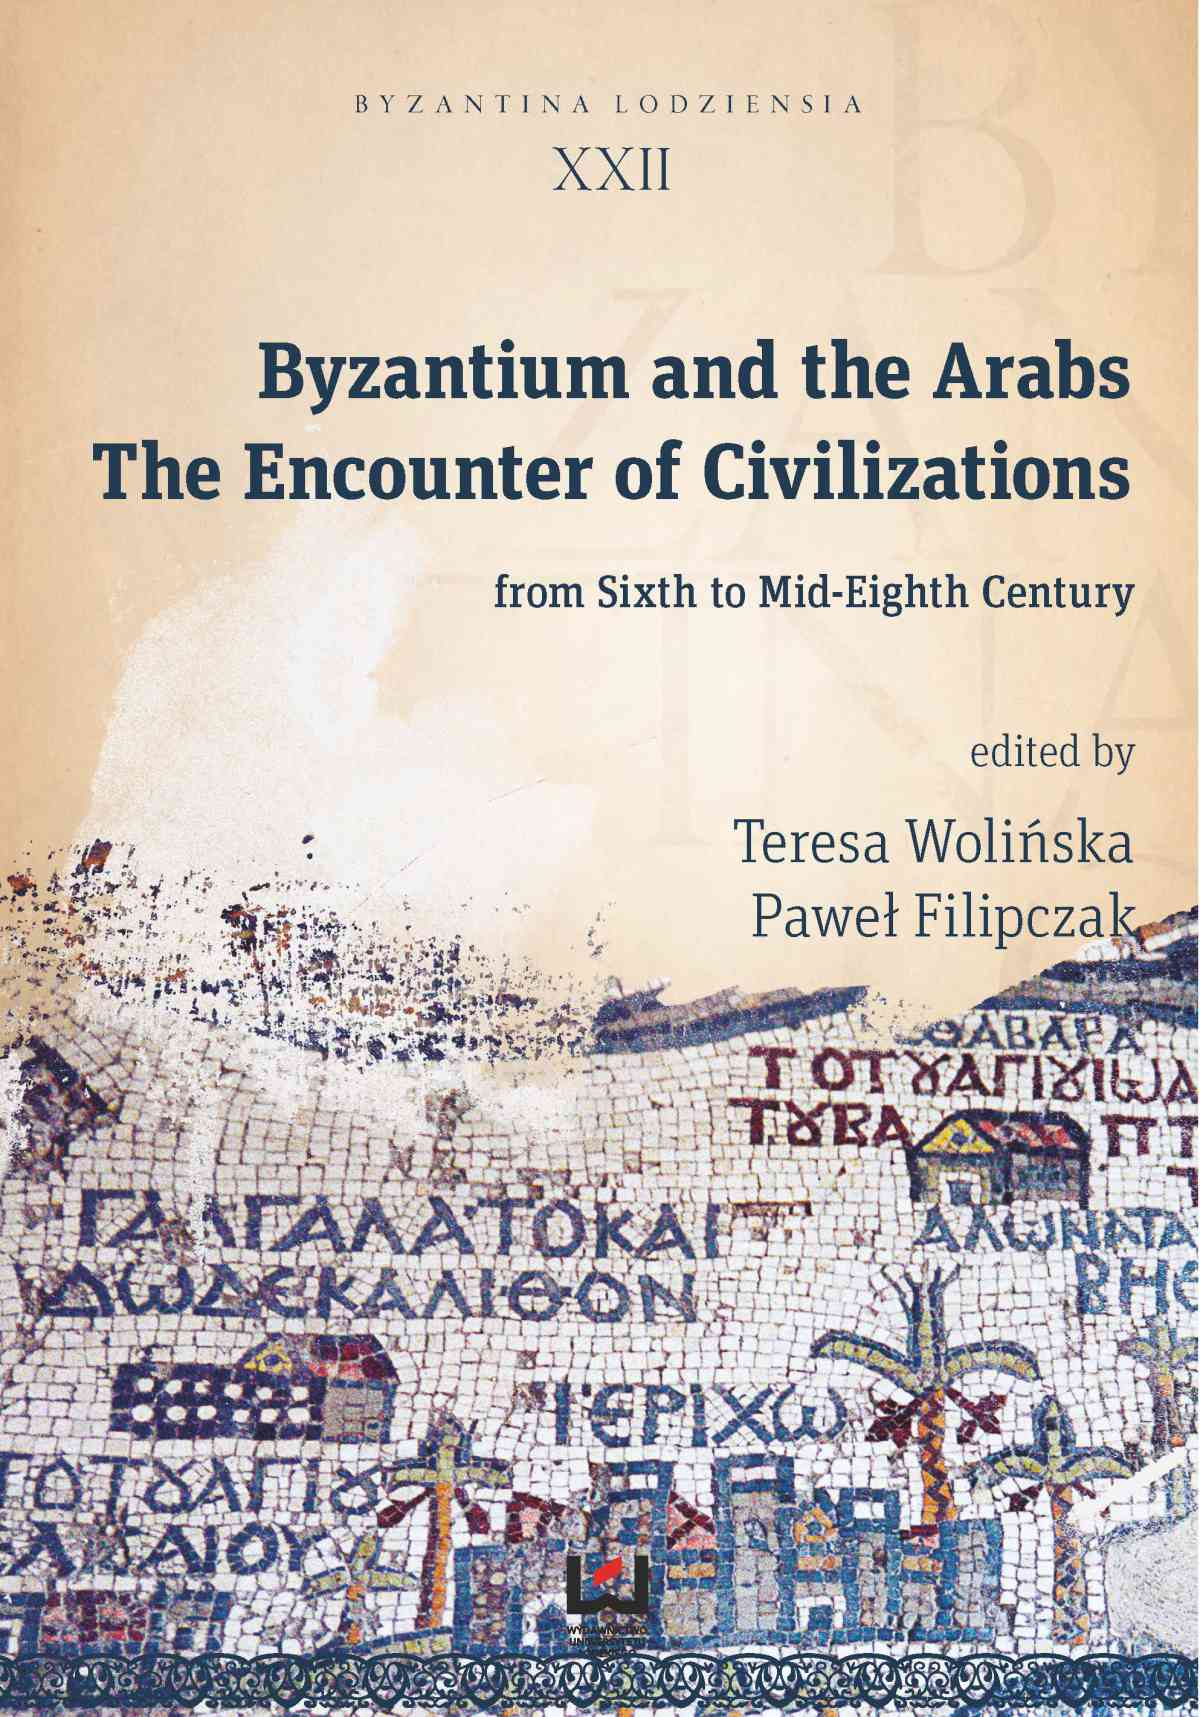 Byzantium and the Arabs. The Encounter of Civilizations from Sixth to Mid-Eighth Century - Ebook (Książka PDF) do pobrania w formacie PDF